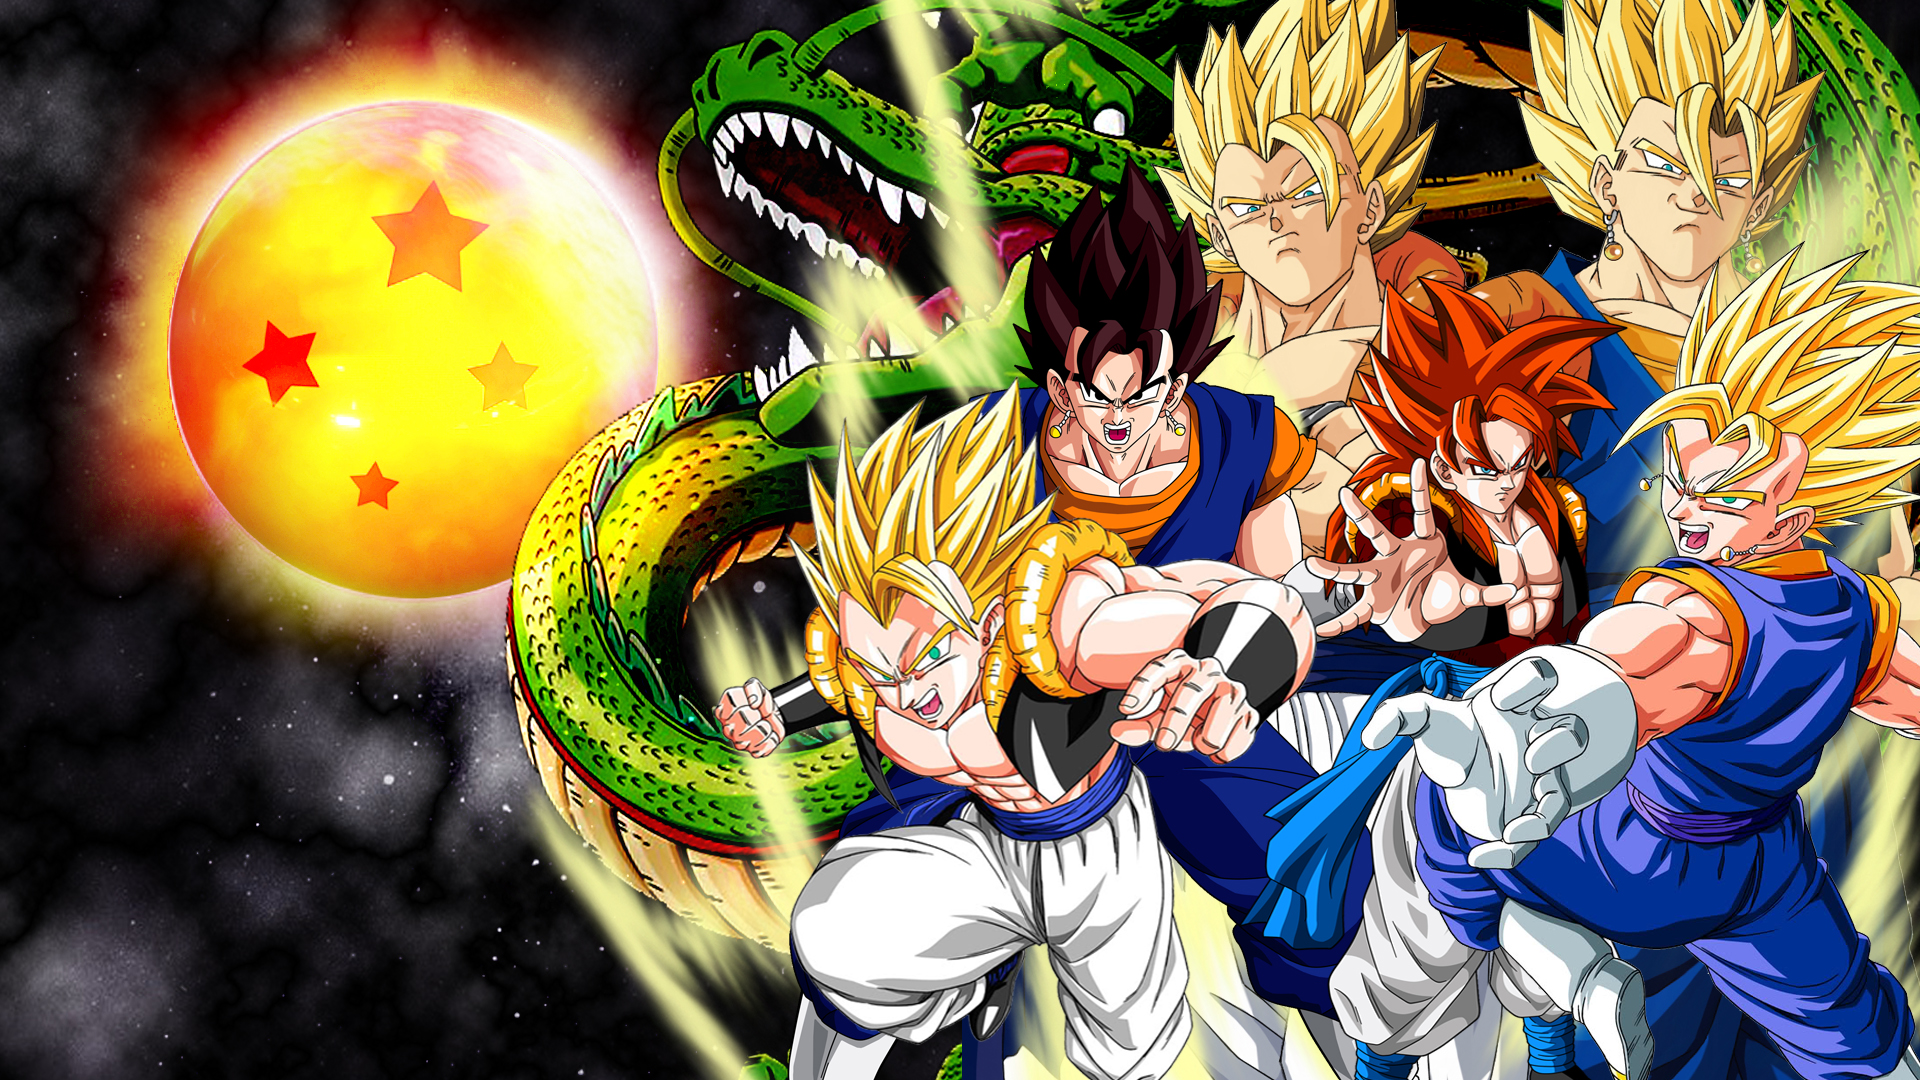 dbz wallpaper hd